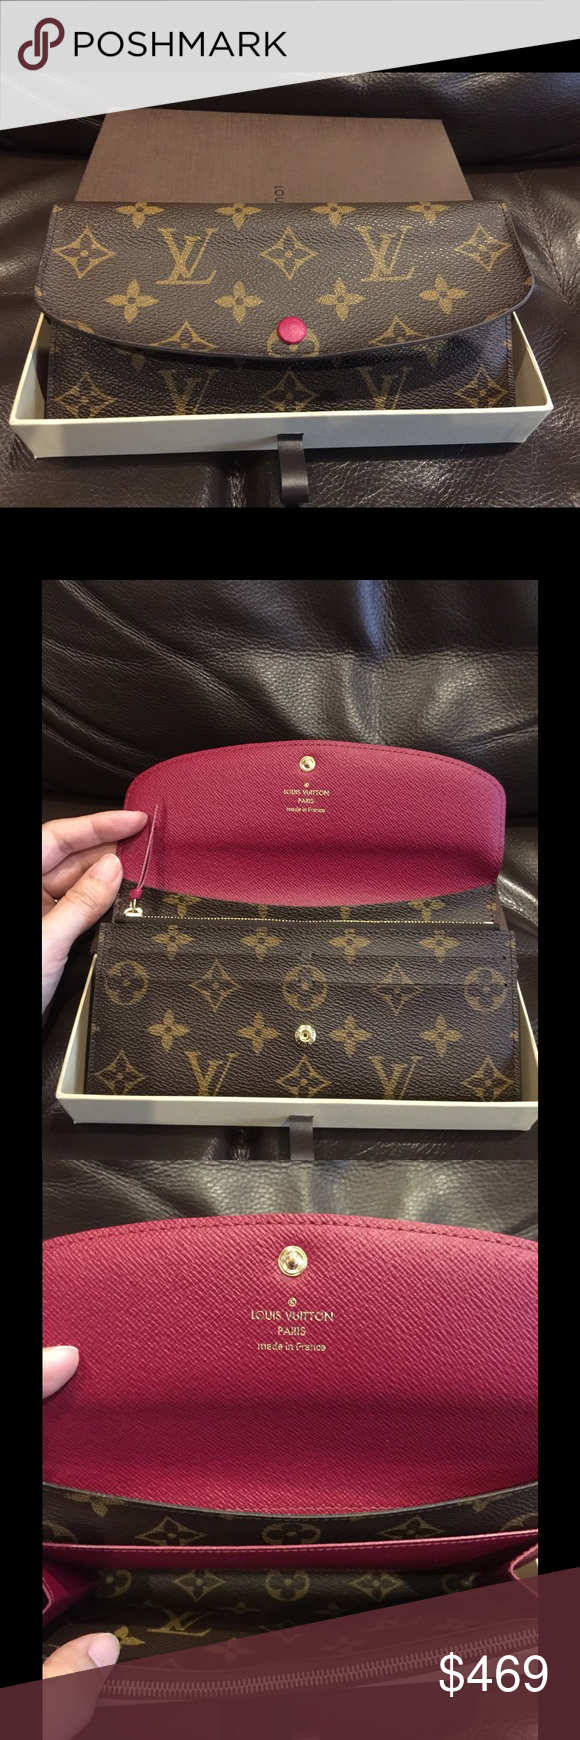 Images For Louis Vuitton Made In France >> Pin On My Posh Picks